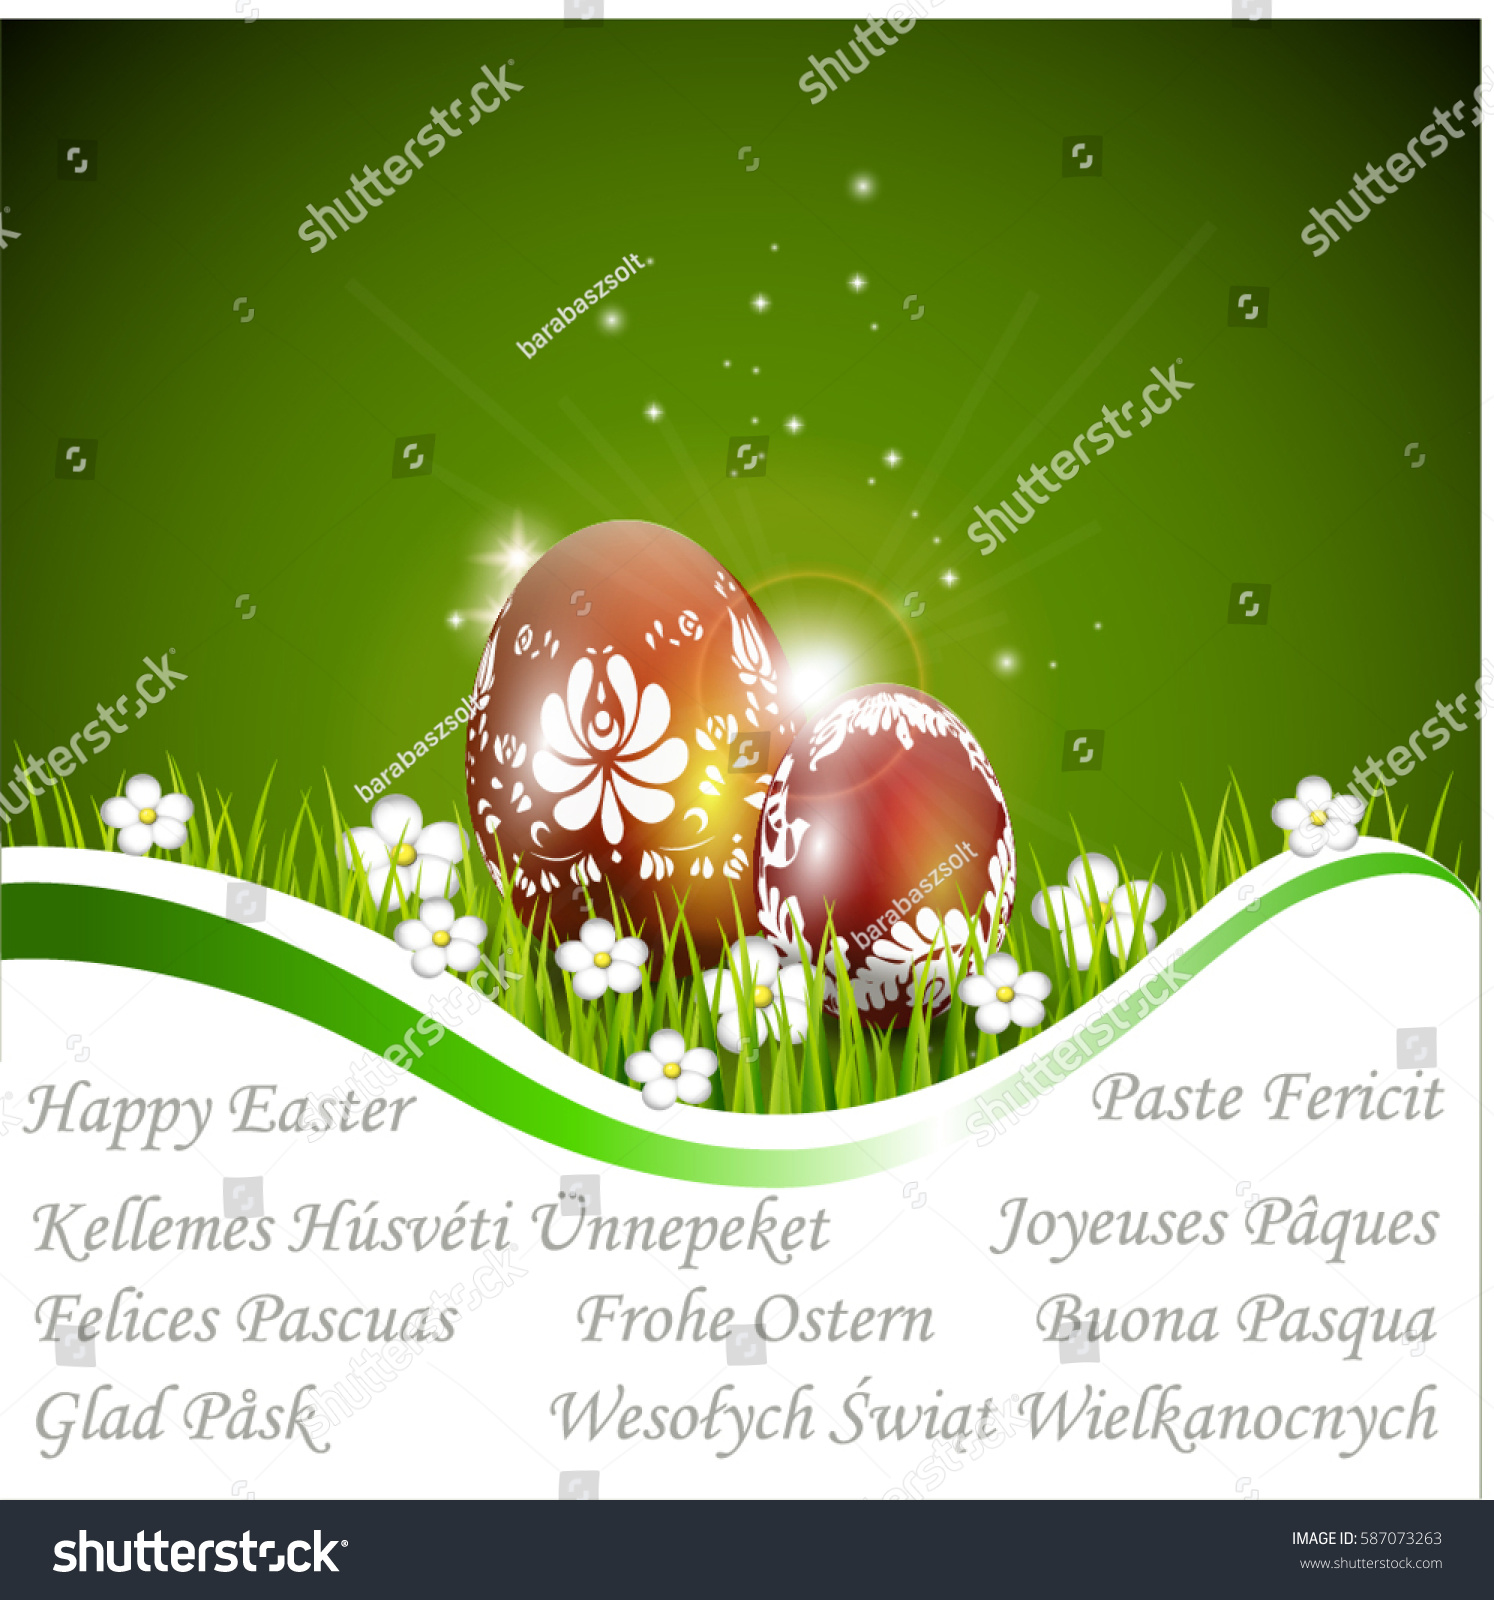 Easter card hungarian motifs happy easter stock vector 587073263 easter card with hungarian motifs and happy easter in different languagesenglish romanian m4hsunfo